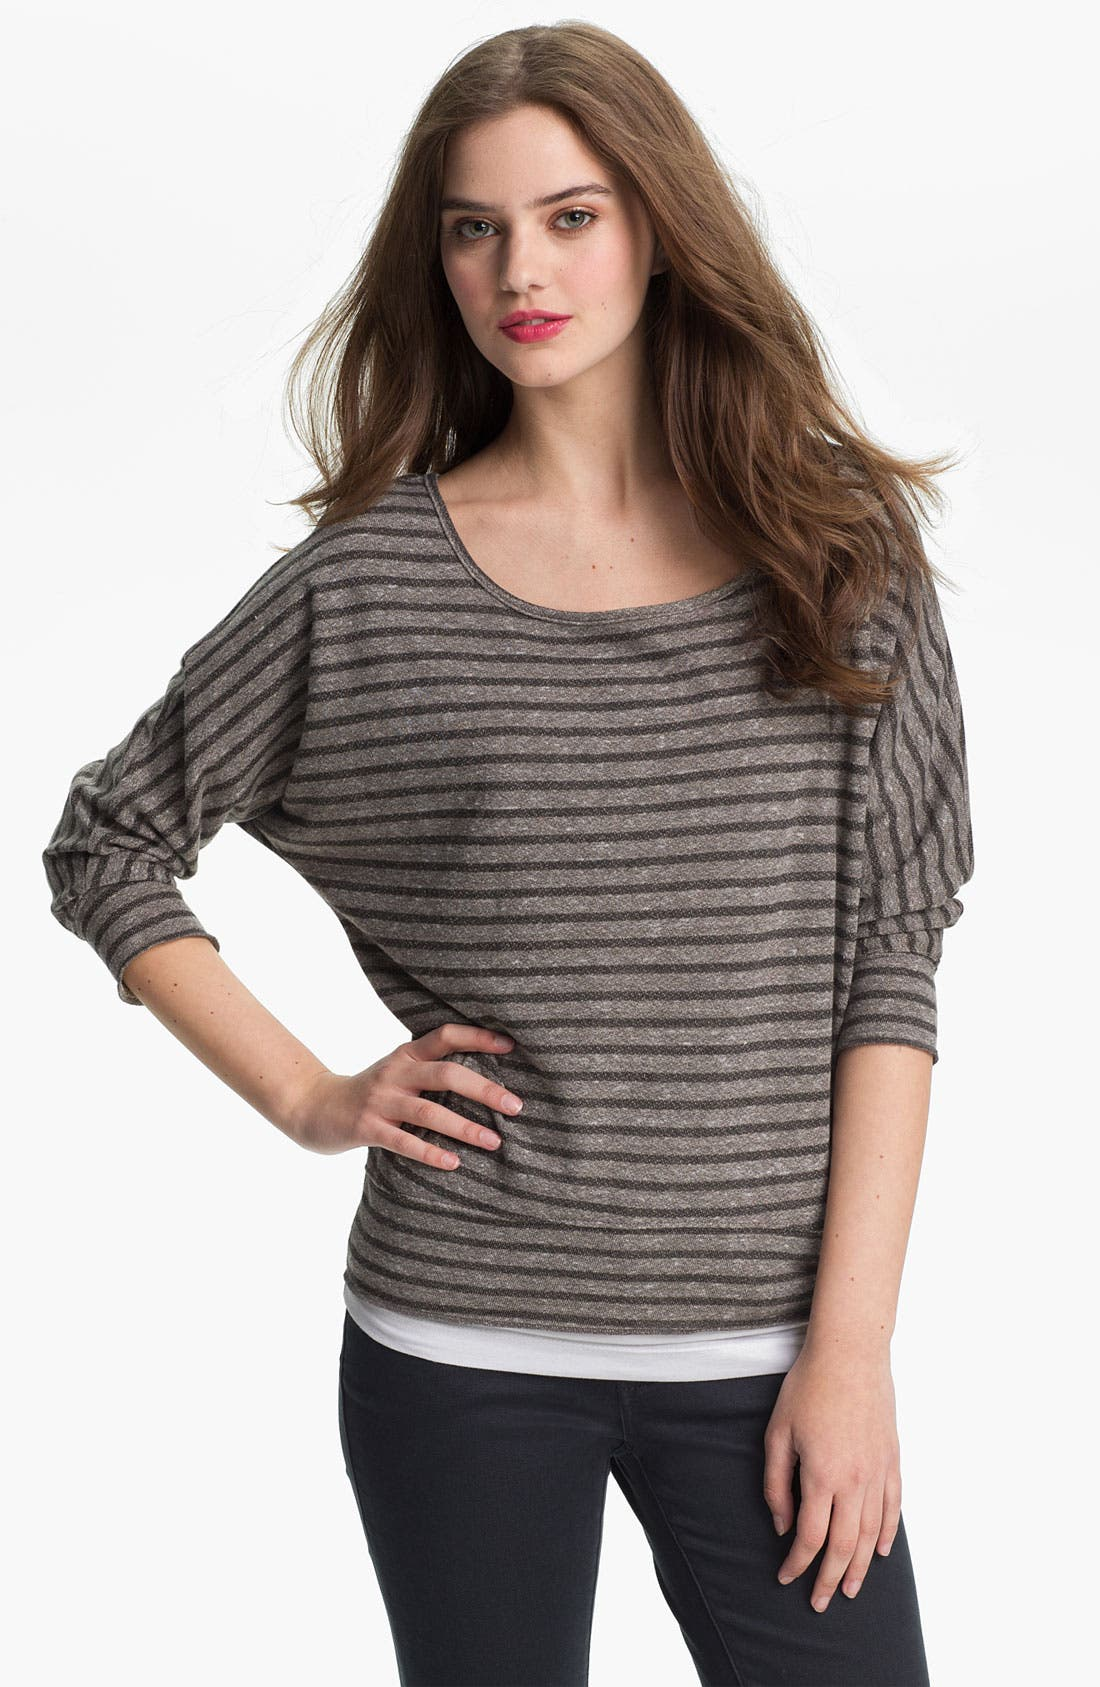 Alternate Image 1 Selected - KUT from the Kloth Scoop Neck Stripe Top